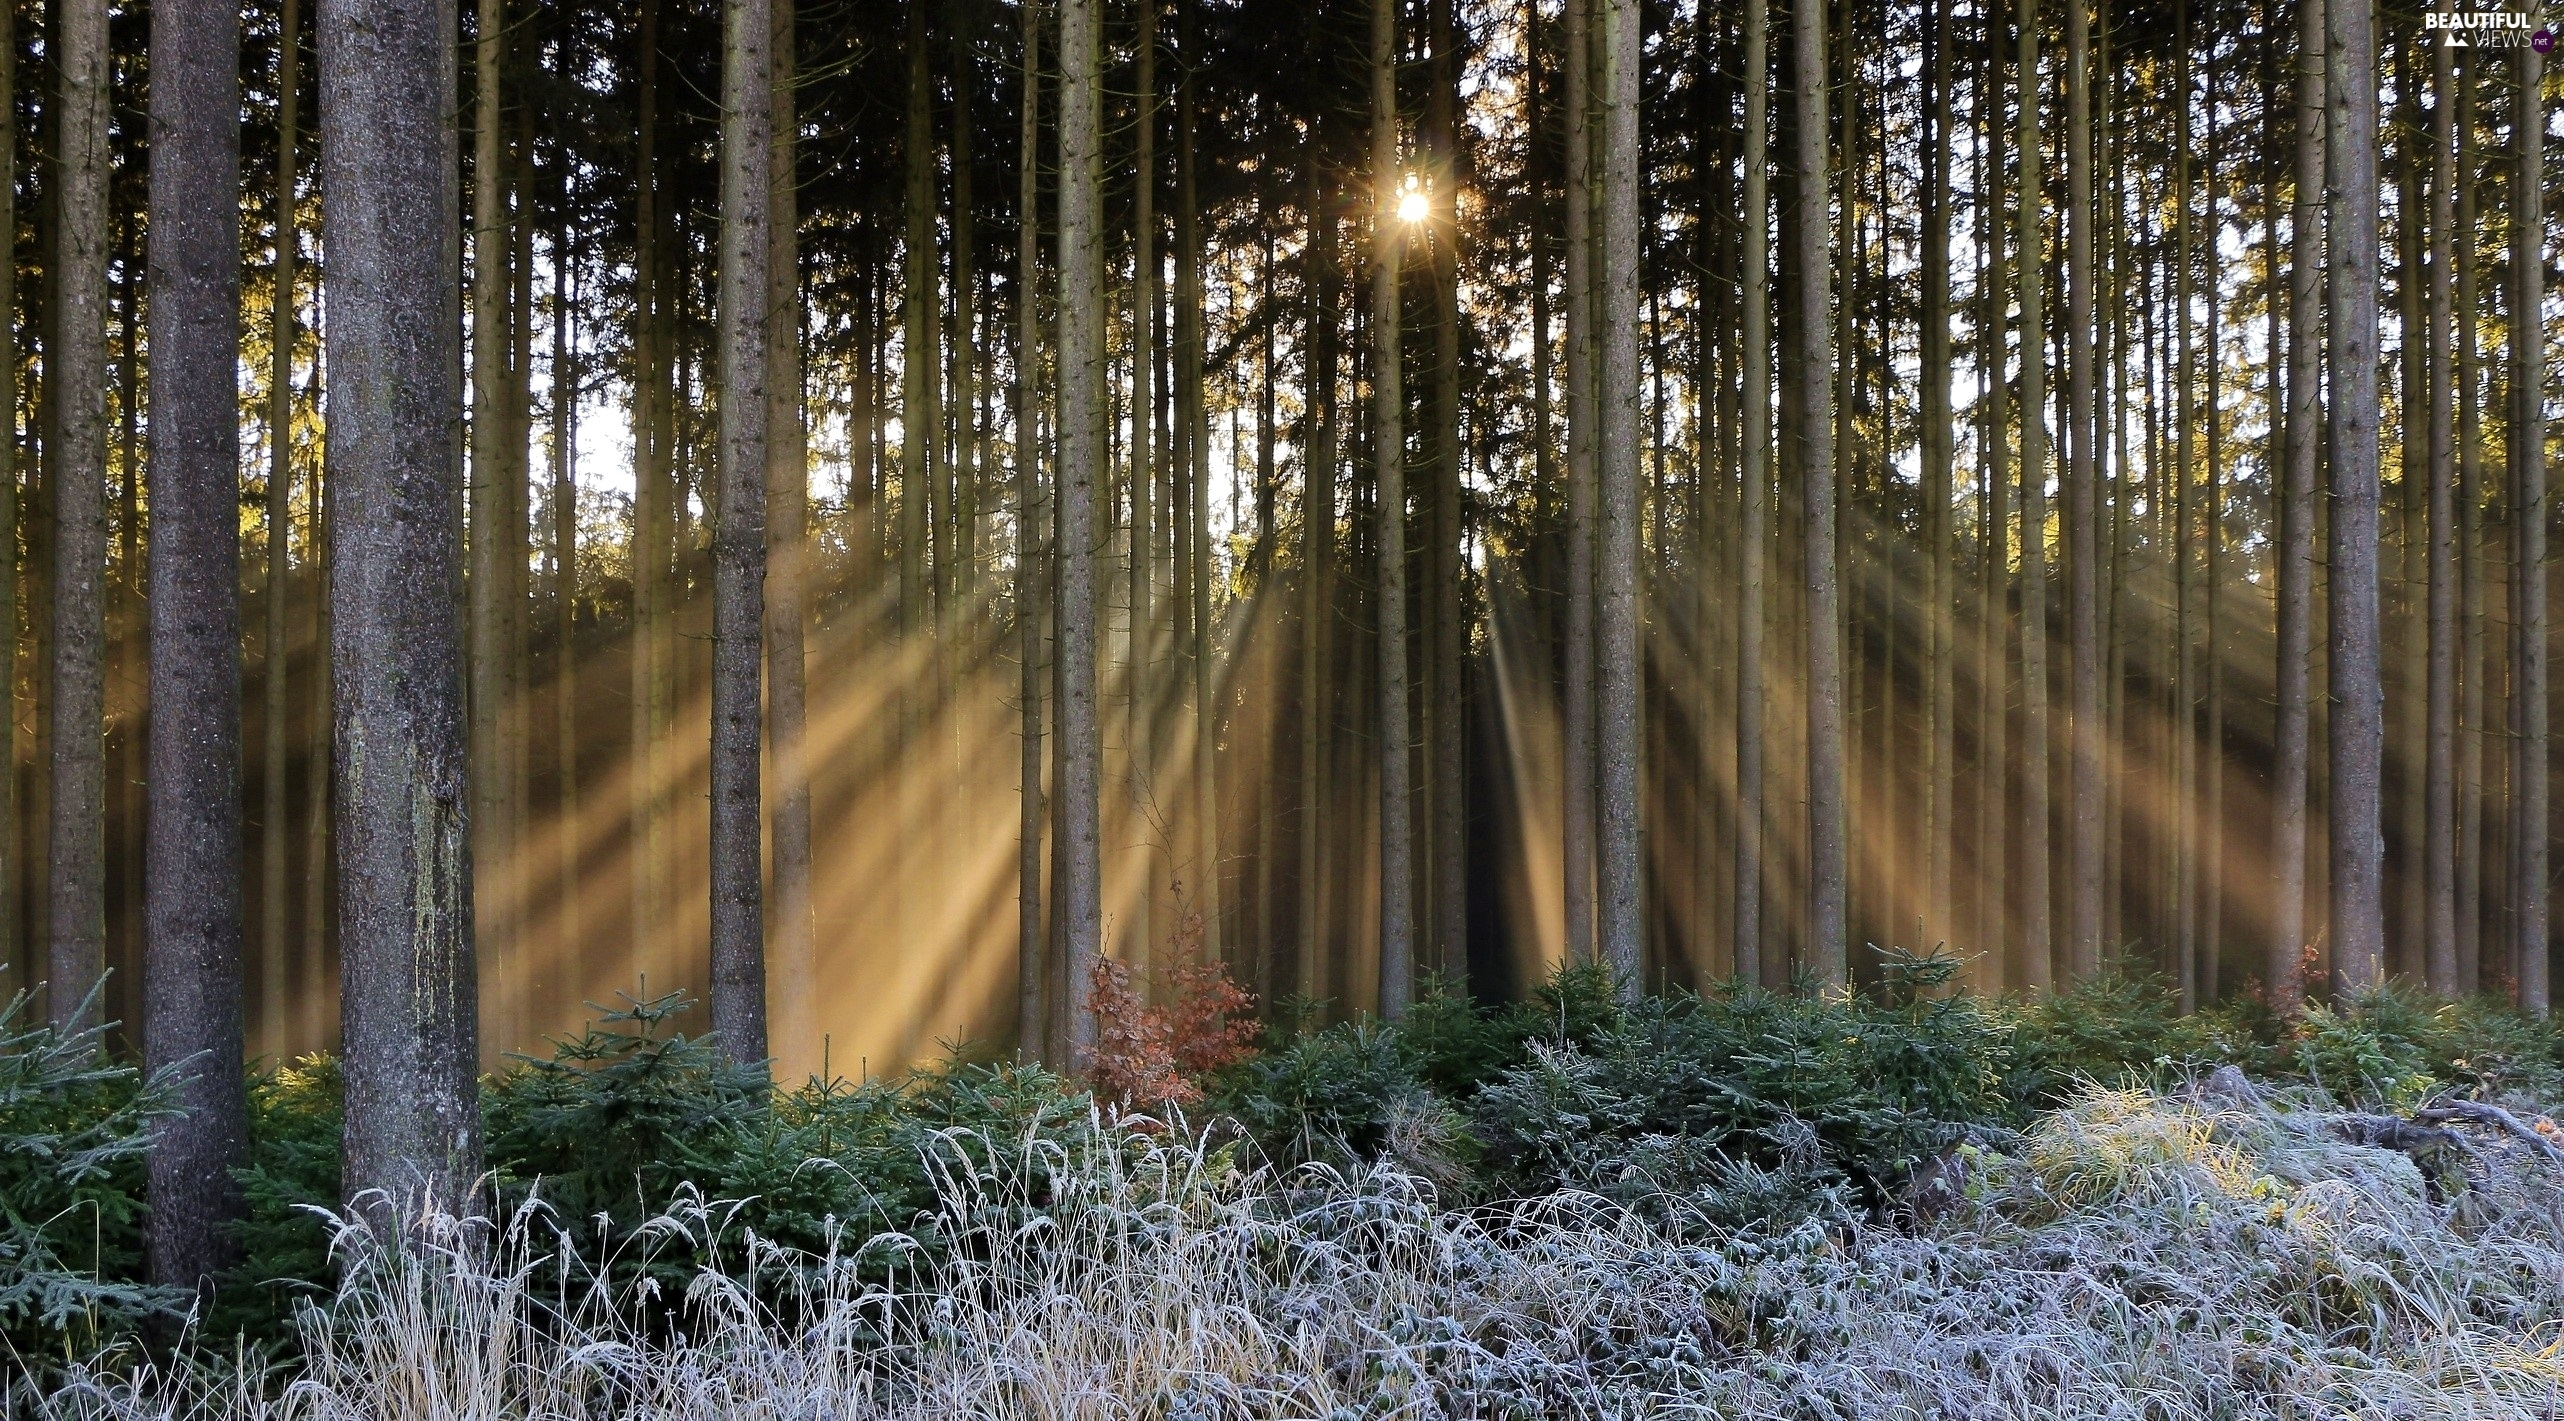 grass, rays of the Sun, trees, forest, viewes